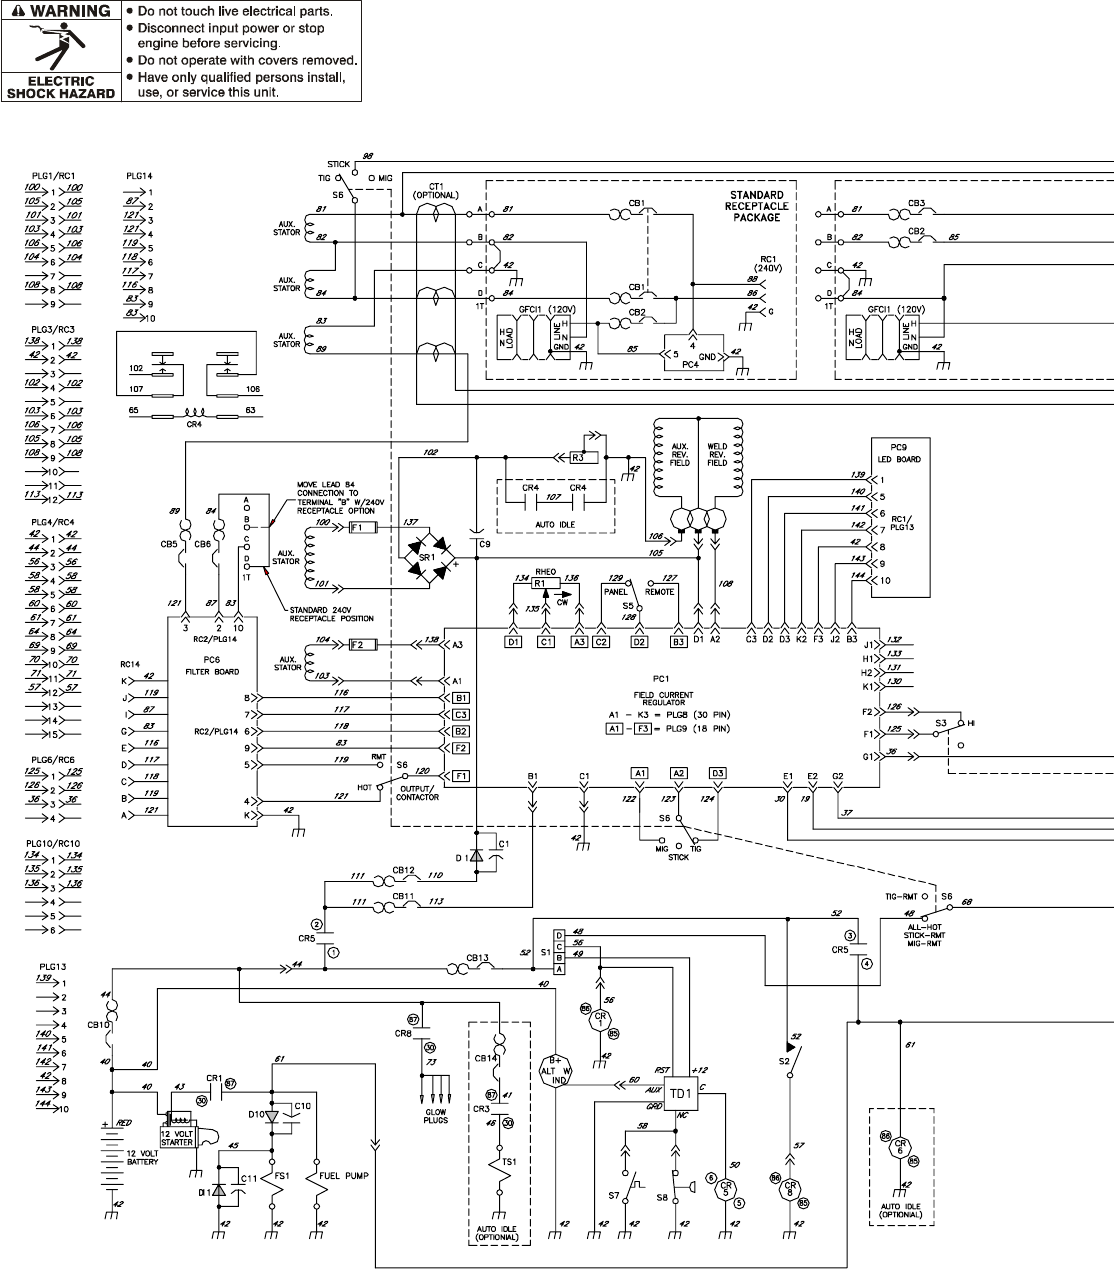 cat 6 wiring diagram pdf with Miller Welder Wiring Diagram on P 0900c152800a7698 further Specification also 714 as well 2007 Cummins Belt Diagram as well Discussion T2704 ds752976.